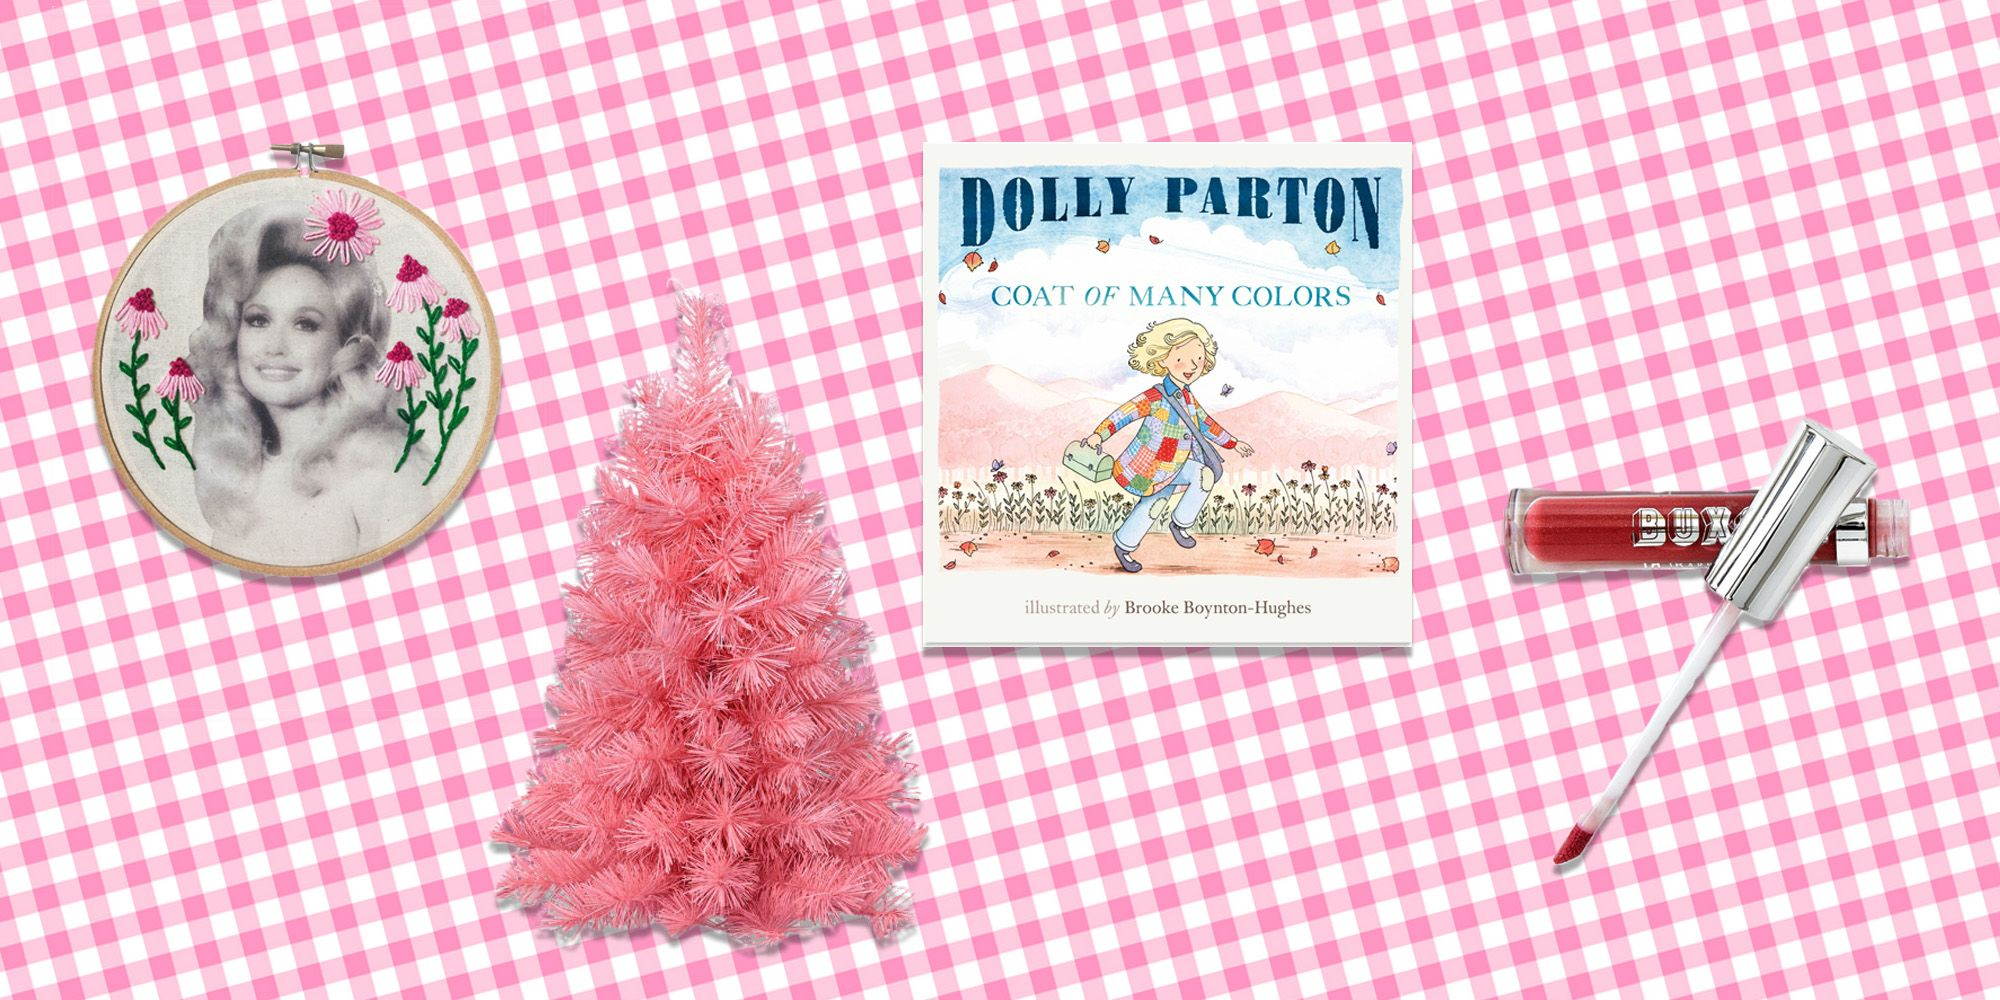 Things For Christmas.9 Things Every Dolly Parton Fan Needs For Christmas Dolly